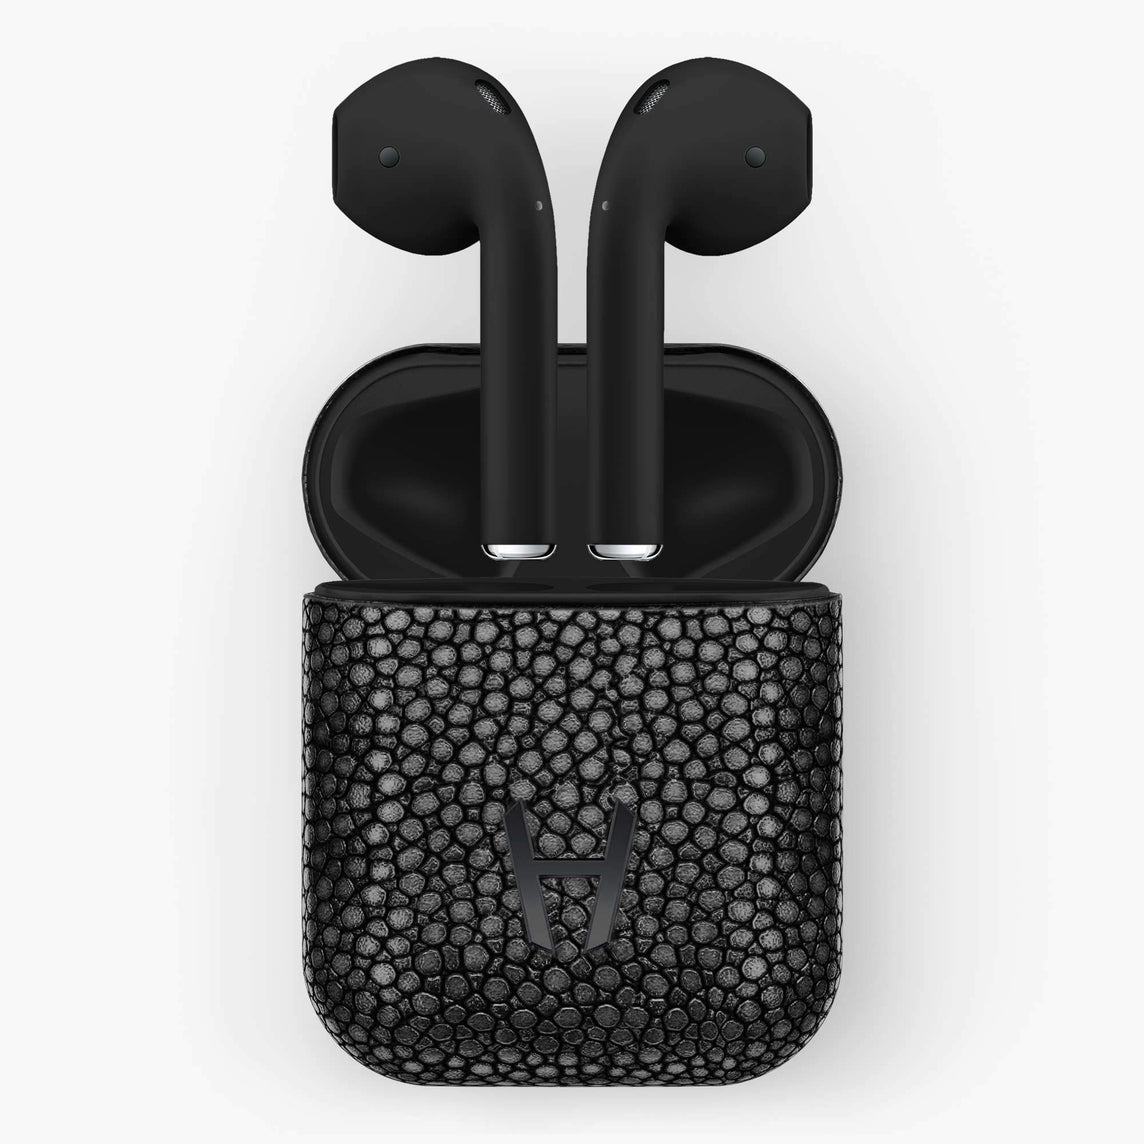 Hadoro Airpods Stingray with Charging case | Black - Black